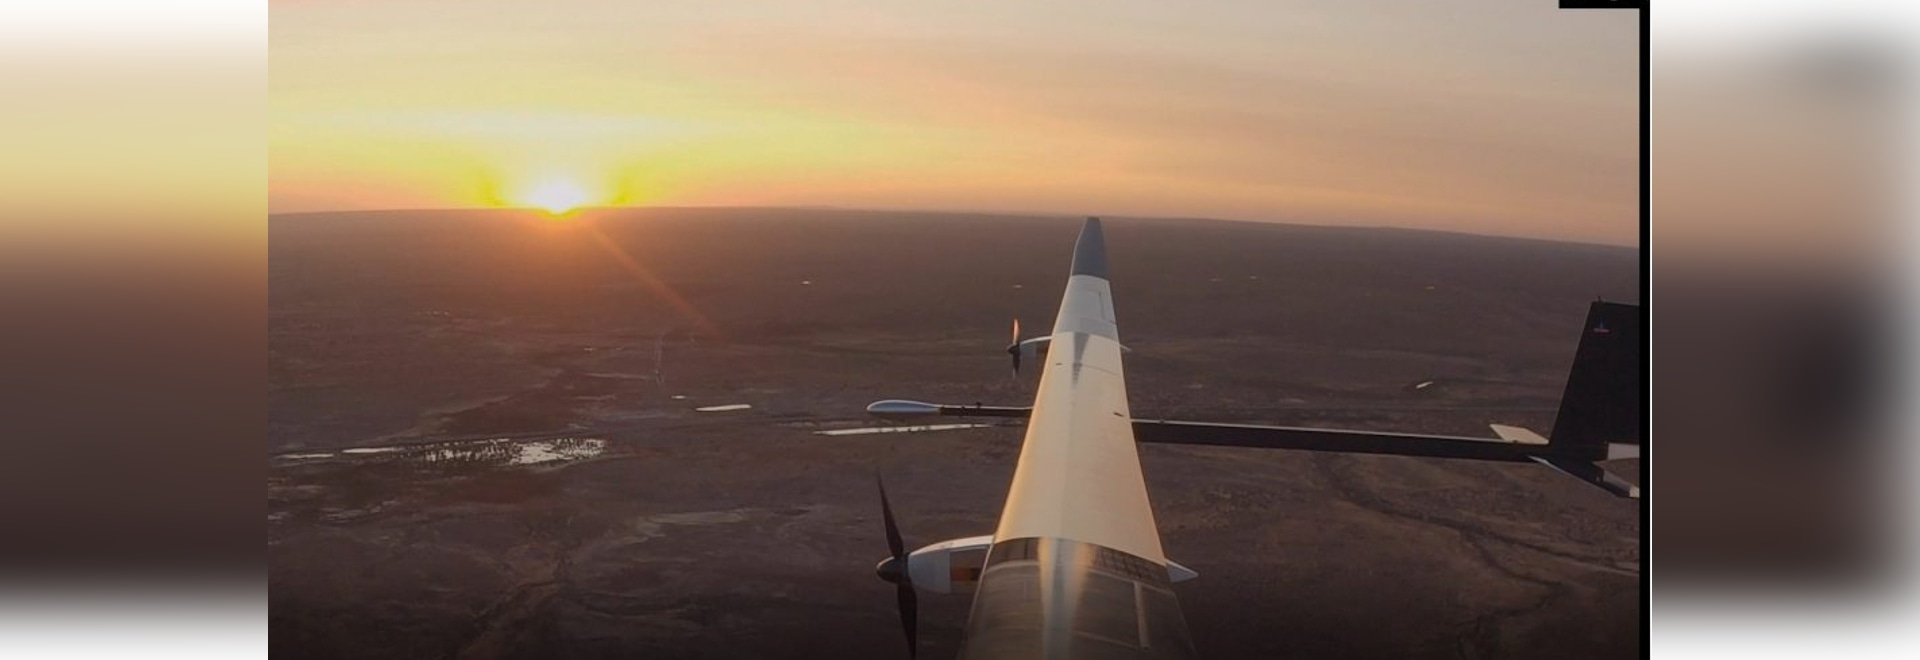 Solar powered unmanned aircraft makes first flight